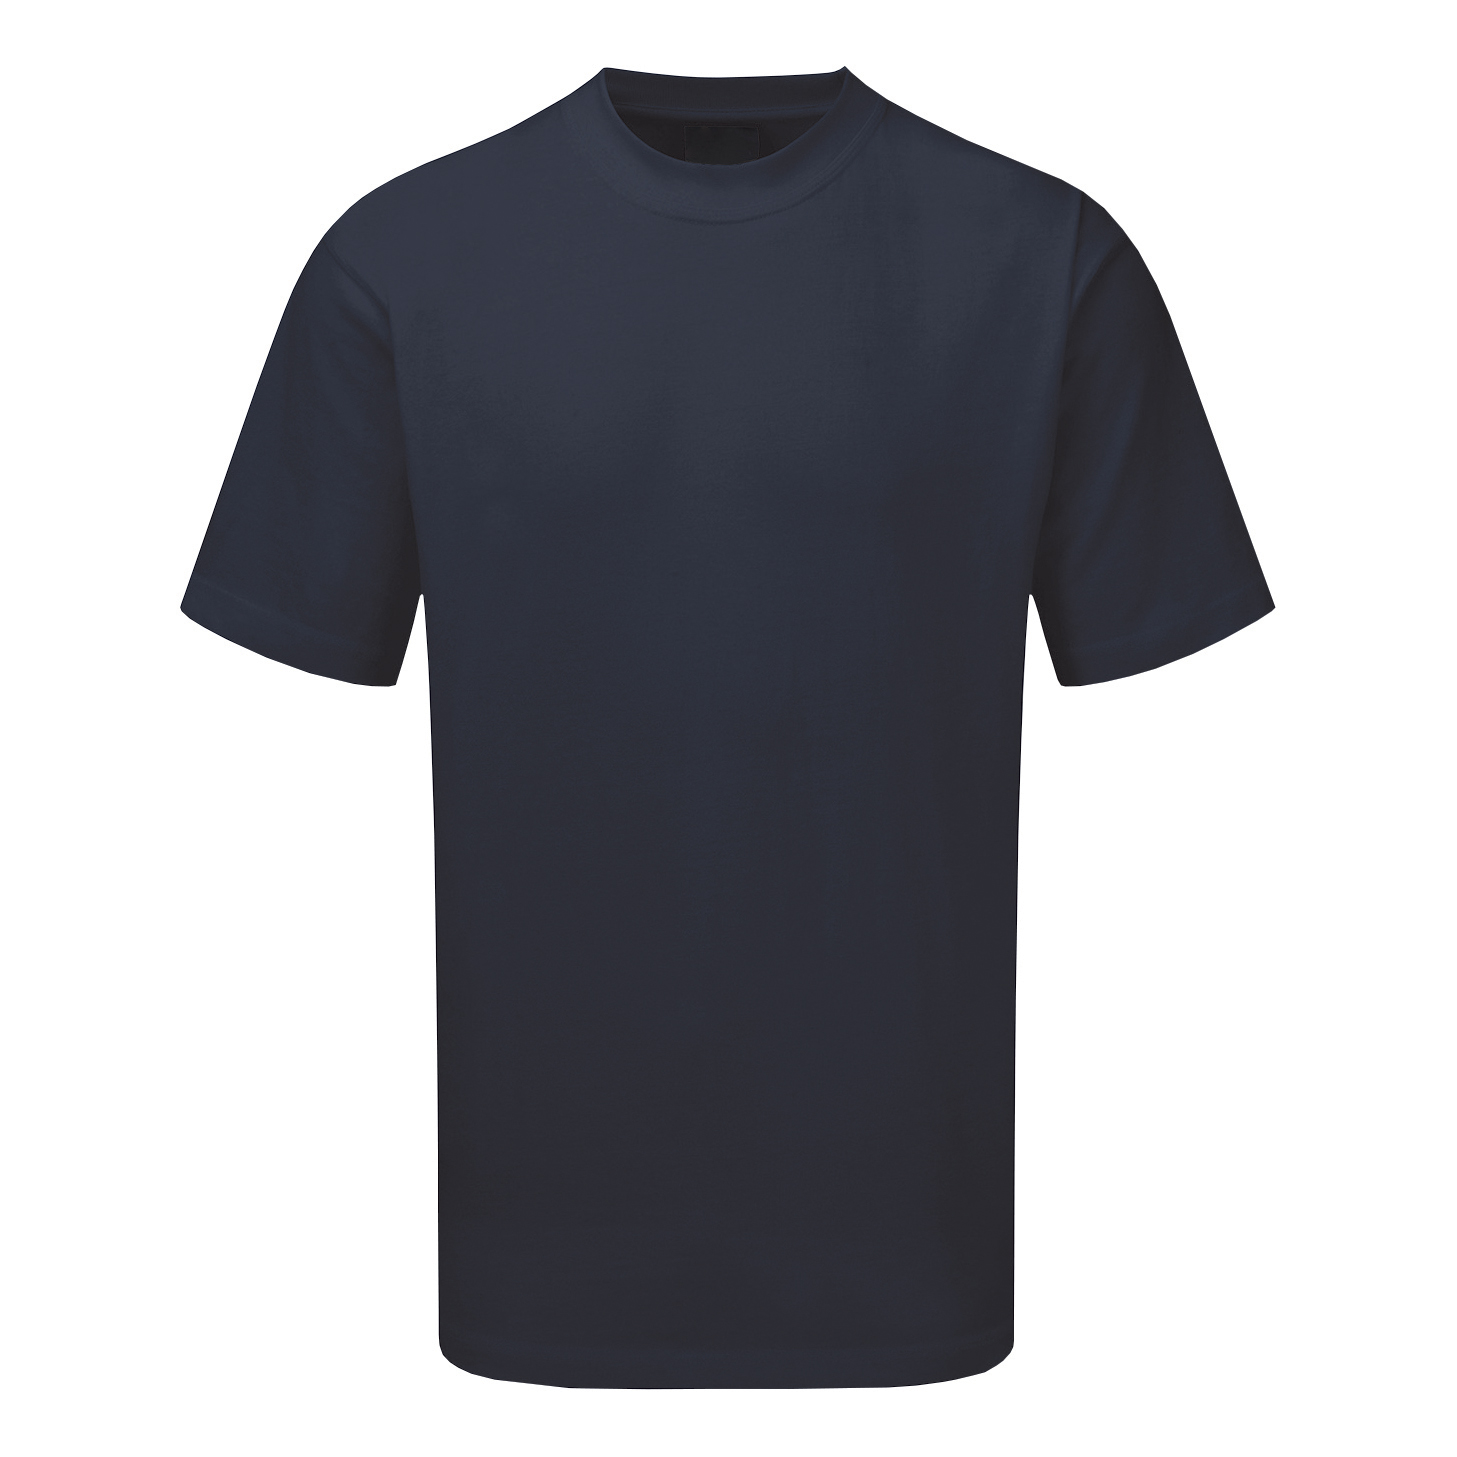 Click Workwear T-Shirt Heavyweight 180gsm Medium Navy Blue Ref CLCTSHWNM *Up to 3 Day Leadtime*